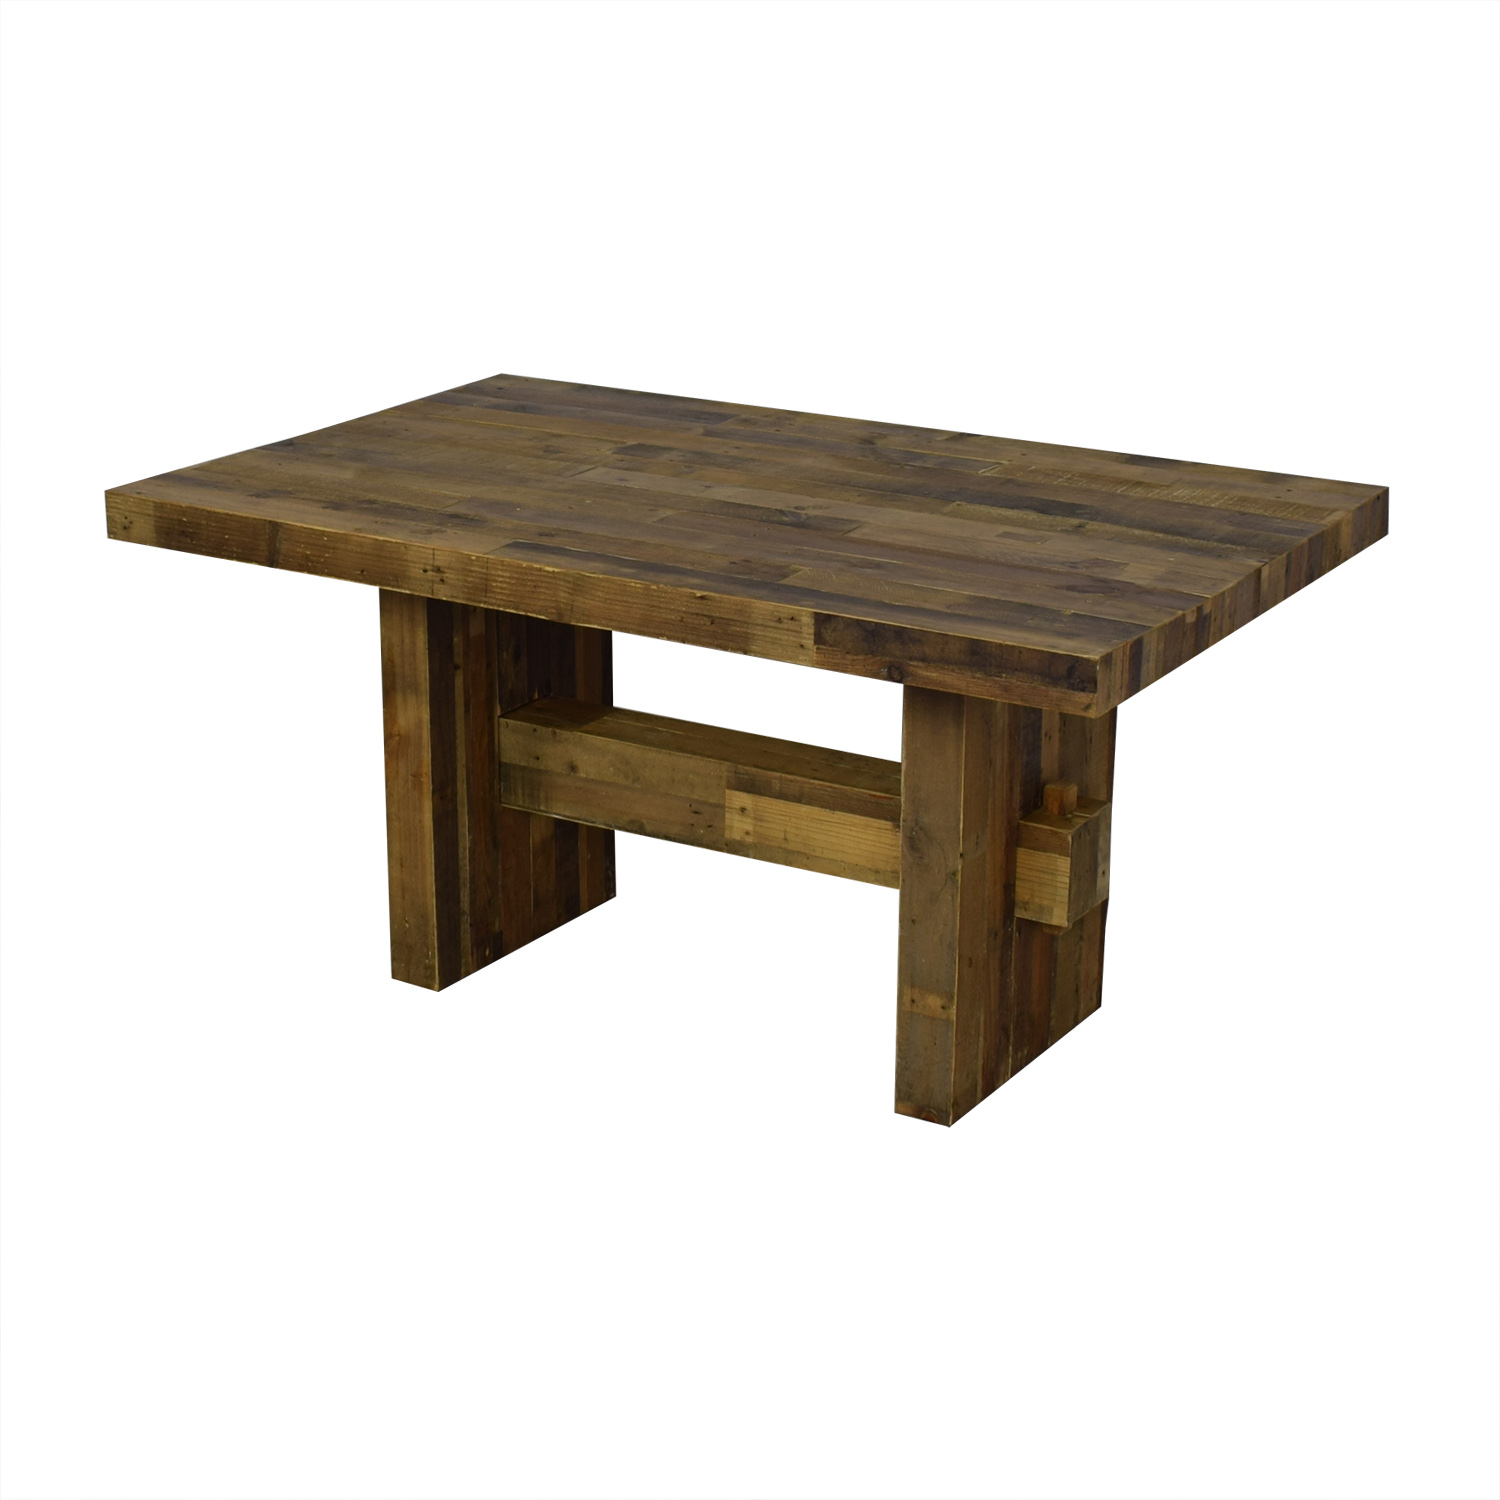 West Elm West Elm Reclaimed Wood Emmerson Table nyc